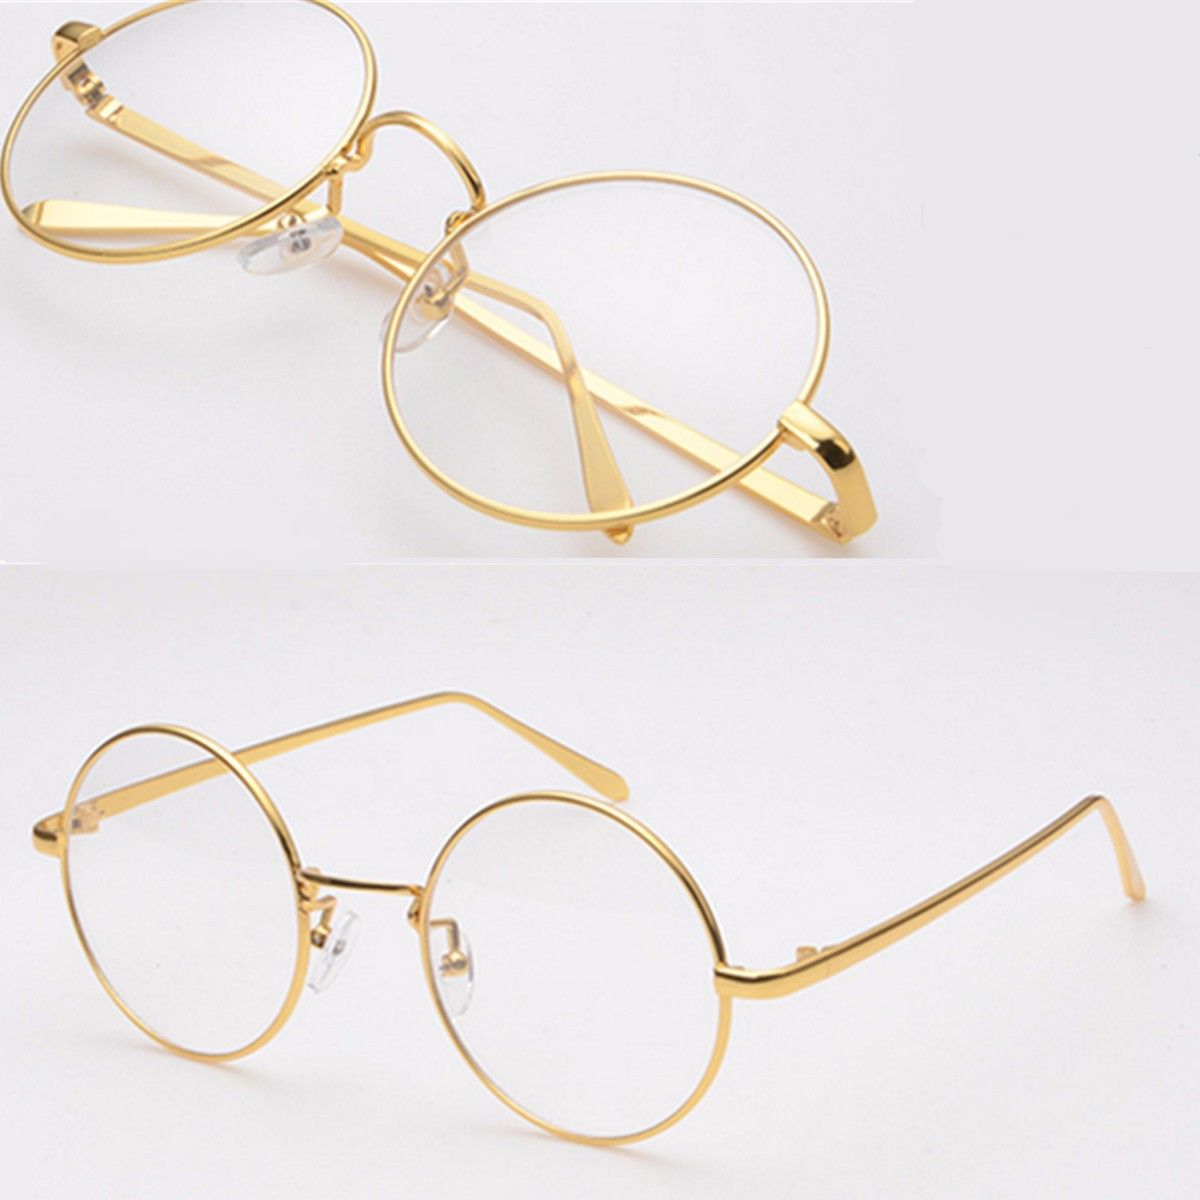 de20ba9e43 GOLD Metal Vintage Round Eyeglass Frame Clear Lens Full-Rim Glasses ...